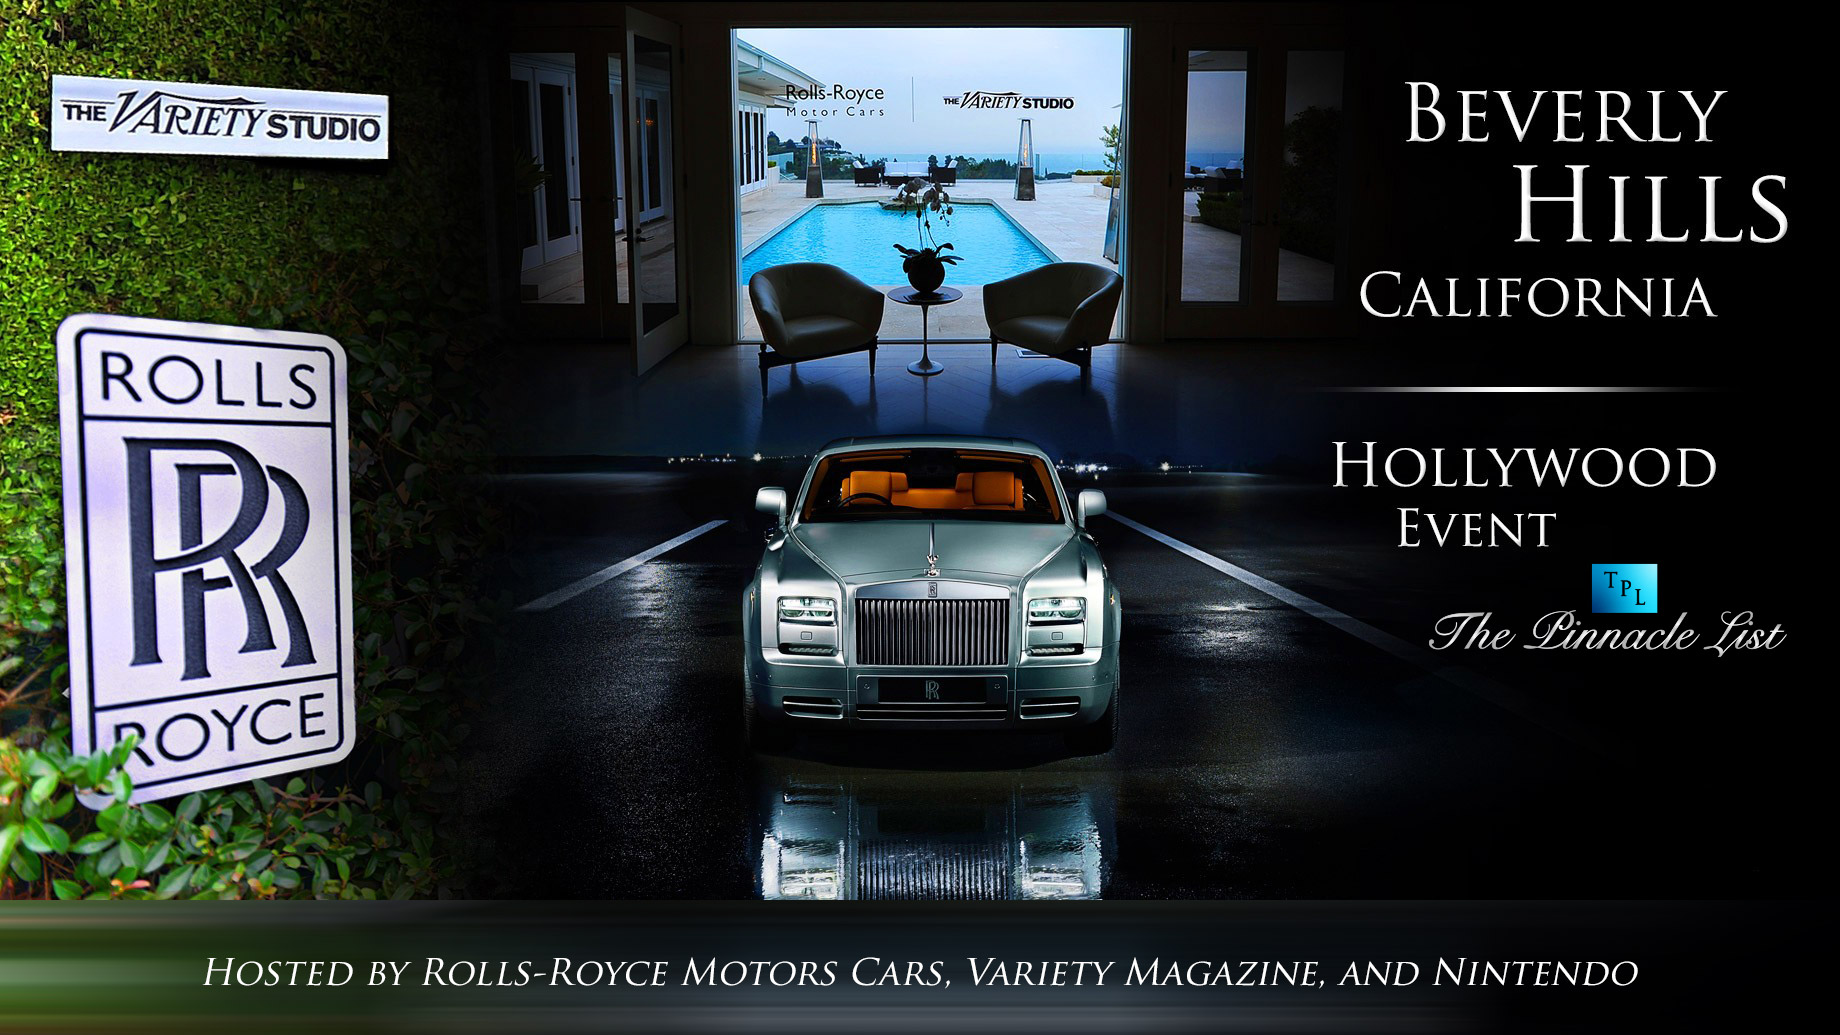 Rolls-Royce Hosts The Variety Studio Event in Beverly Hills, California